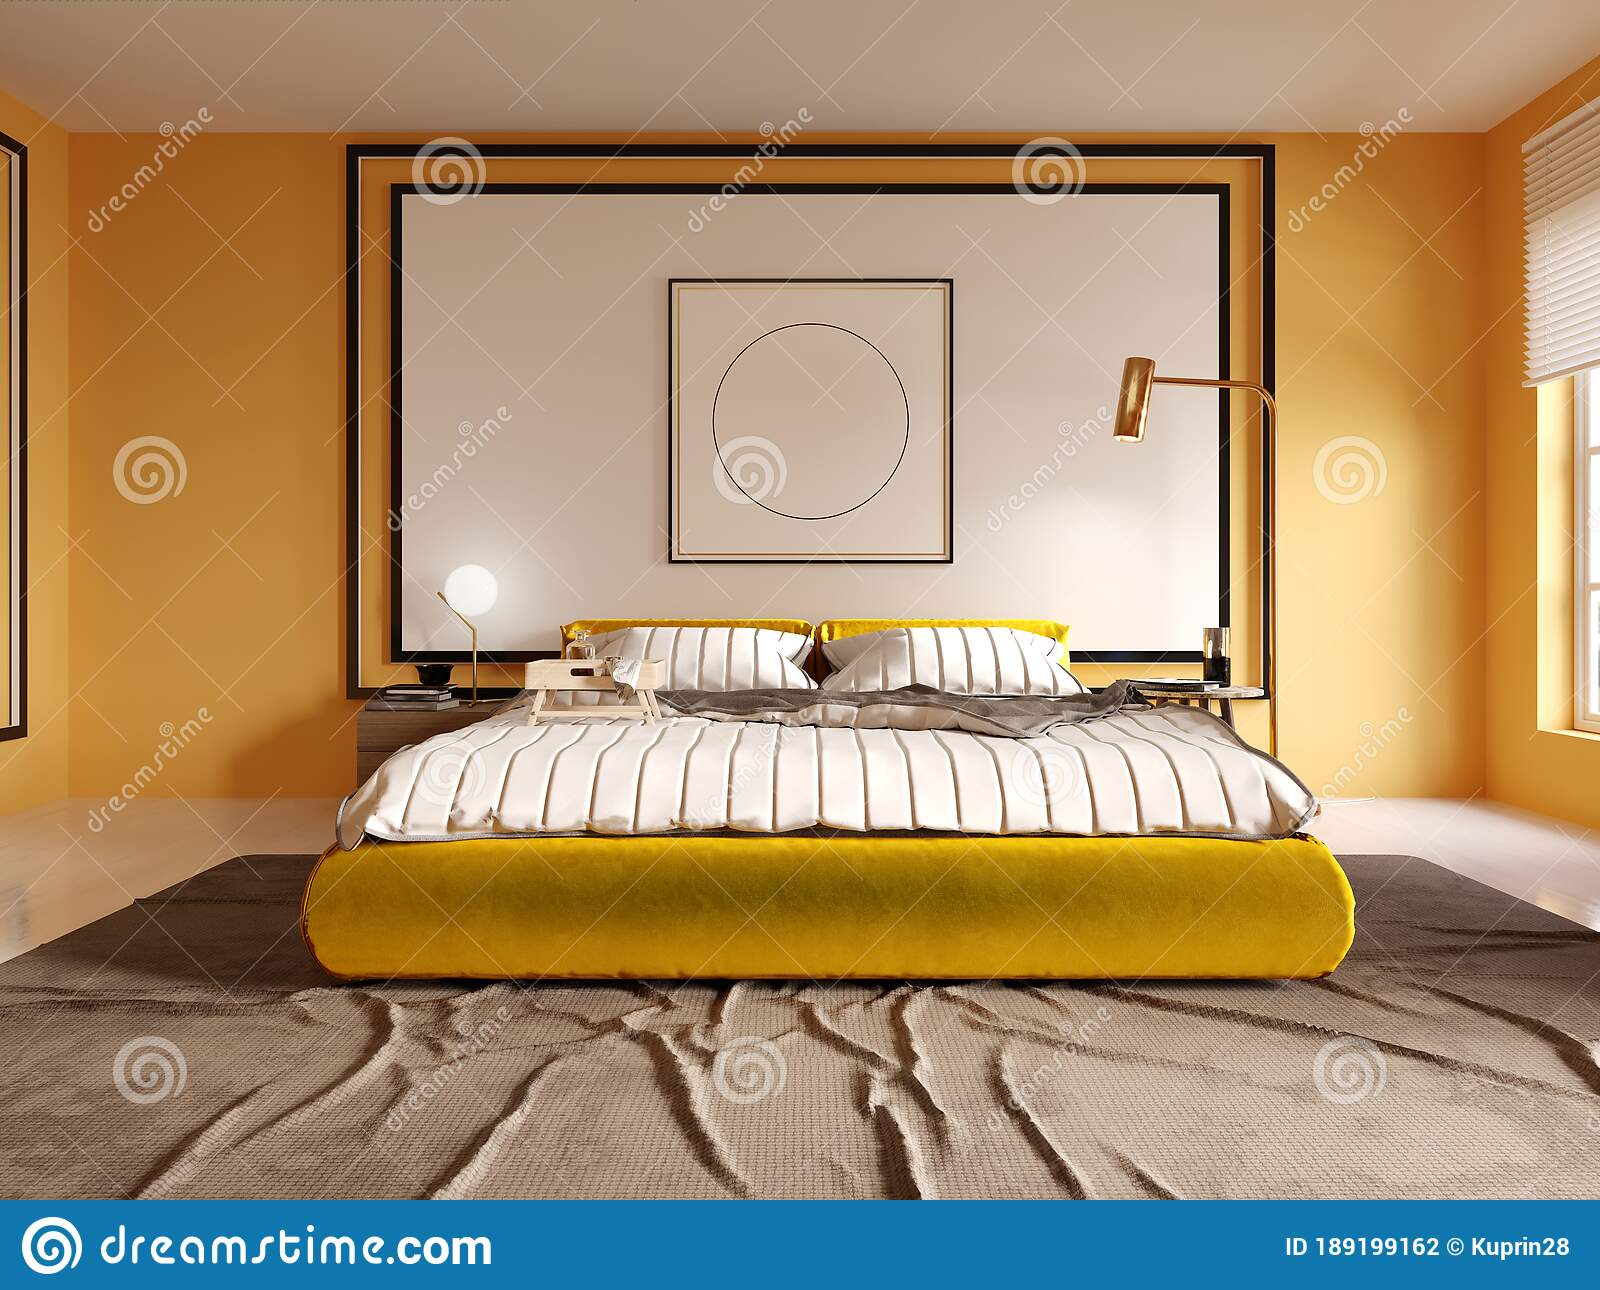 Design Of A Modern Bedroom In Yellow With A White Headboard Over The Bed Yellow Bed Stock Illustration Illustration Of Bedding Blanket 189199162